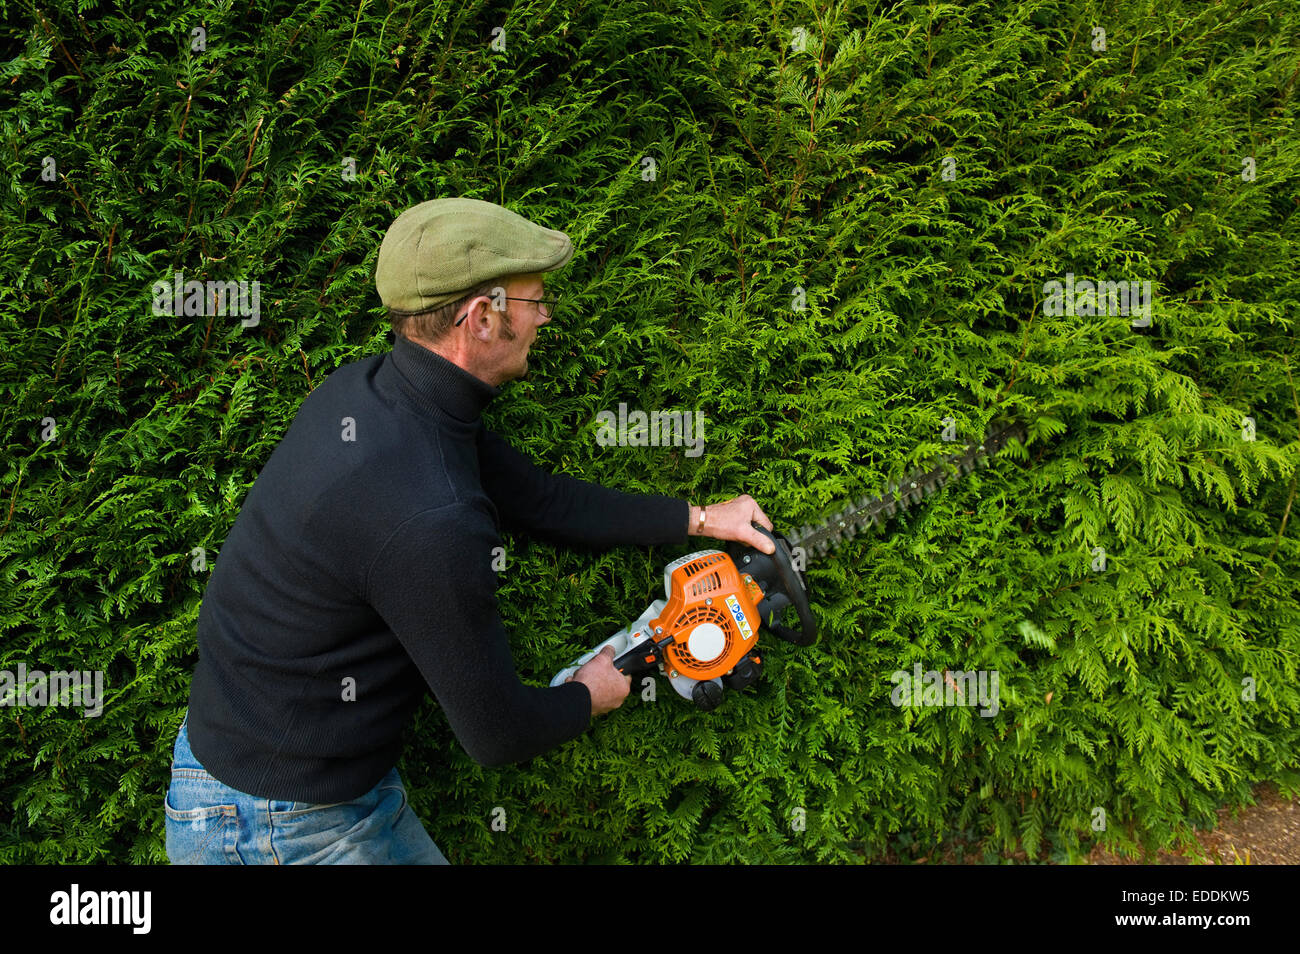 A man trimming a thick green hedge with a motorized hedge trimmer. Stock Photo